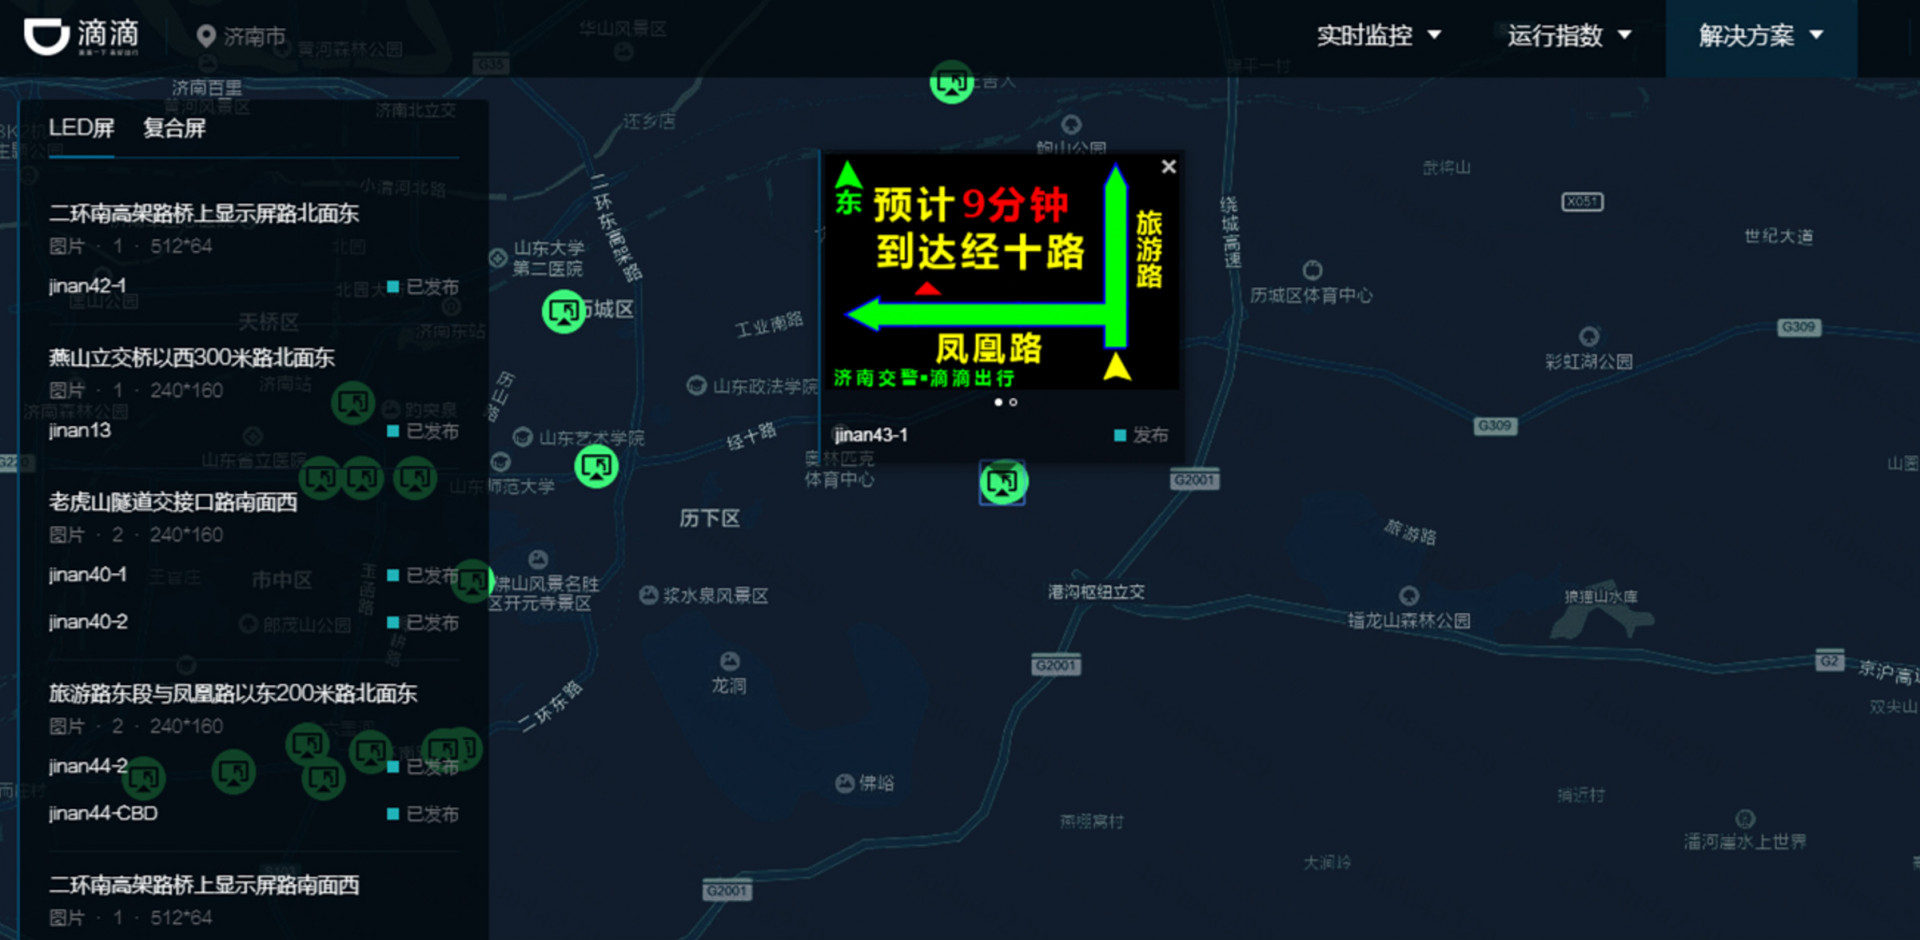 Physical screens along Jinan's express ways help drivers plan routes better according to real-time traffic situation (Image Credit: TechNode)